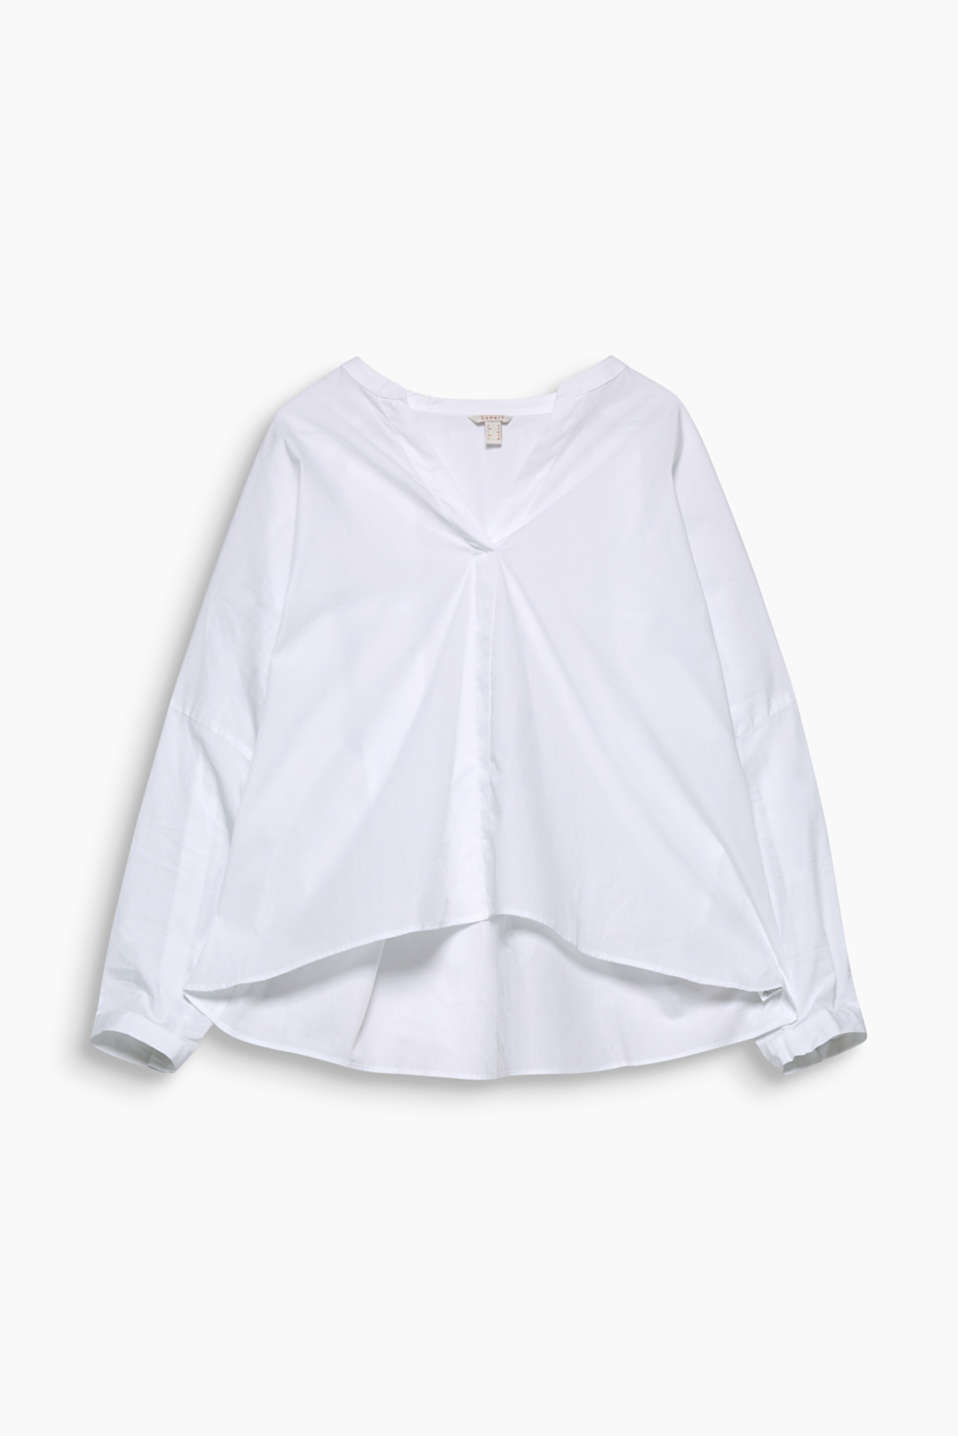 Your go-to piece any day, this stylish cotton blouse has an oversized design in a Henley style, with turn-up sleeves!